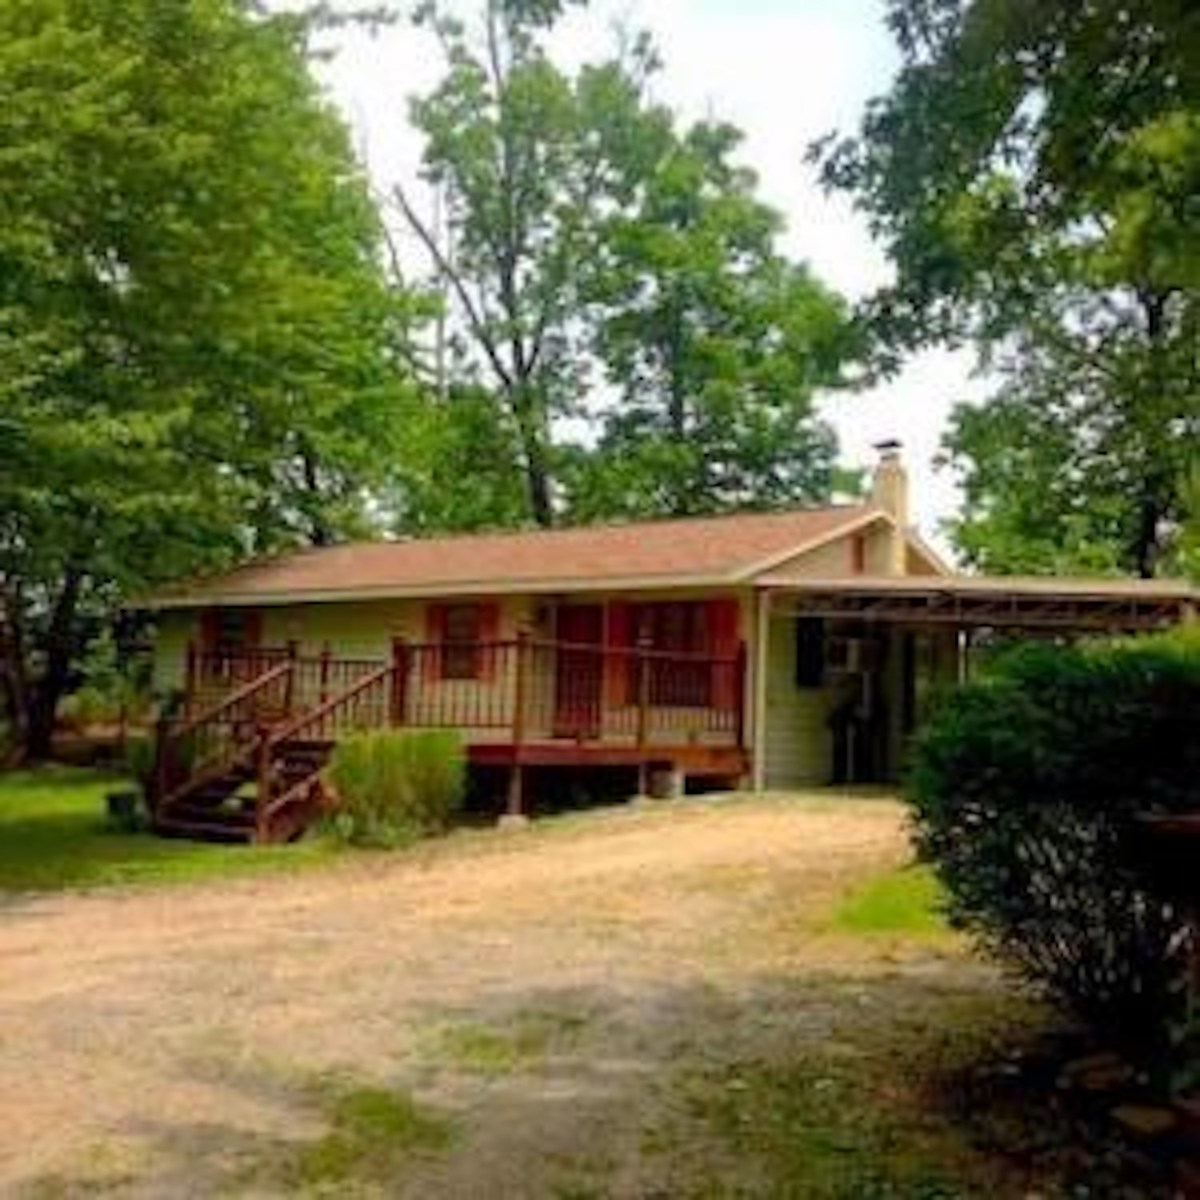 Home for Sale in Oregon County, MO